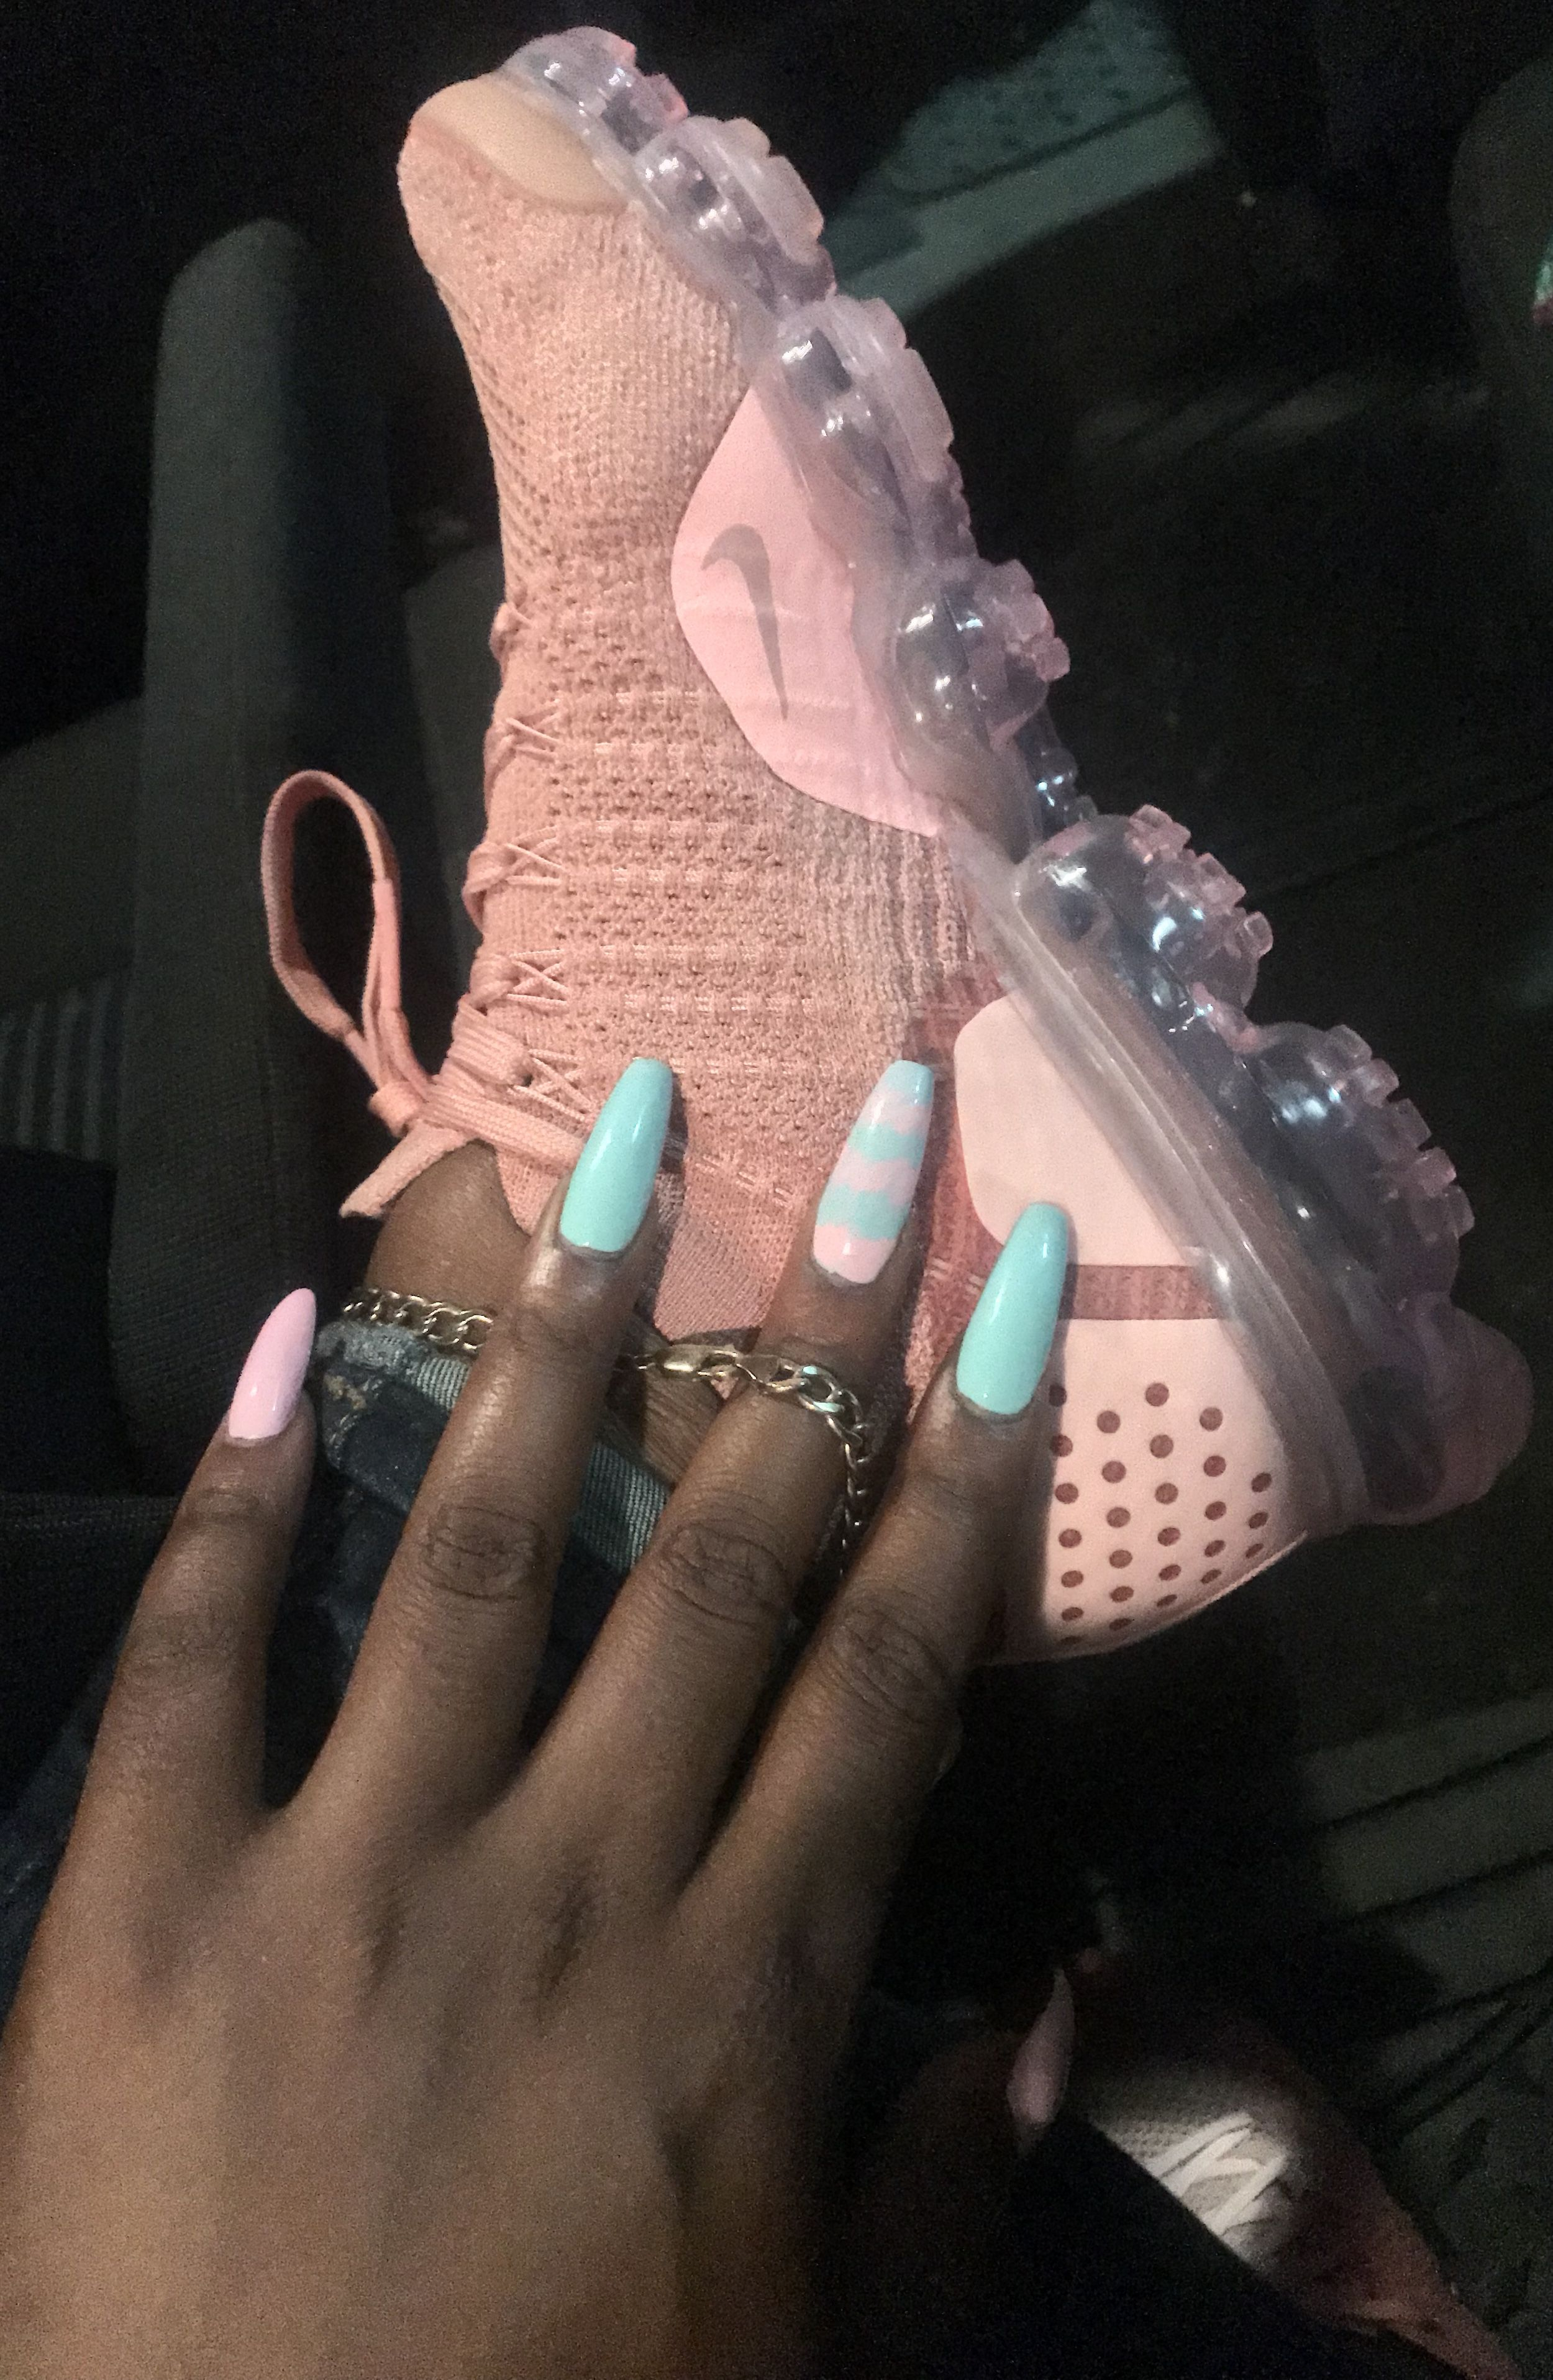 premium selection 4247d 9e38a Nike Vapor Max | Feet's in 2019 | Fly shoes, Fashion shoes ...